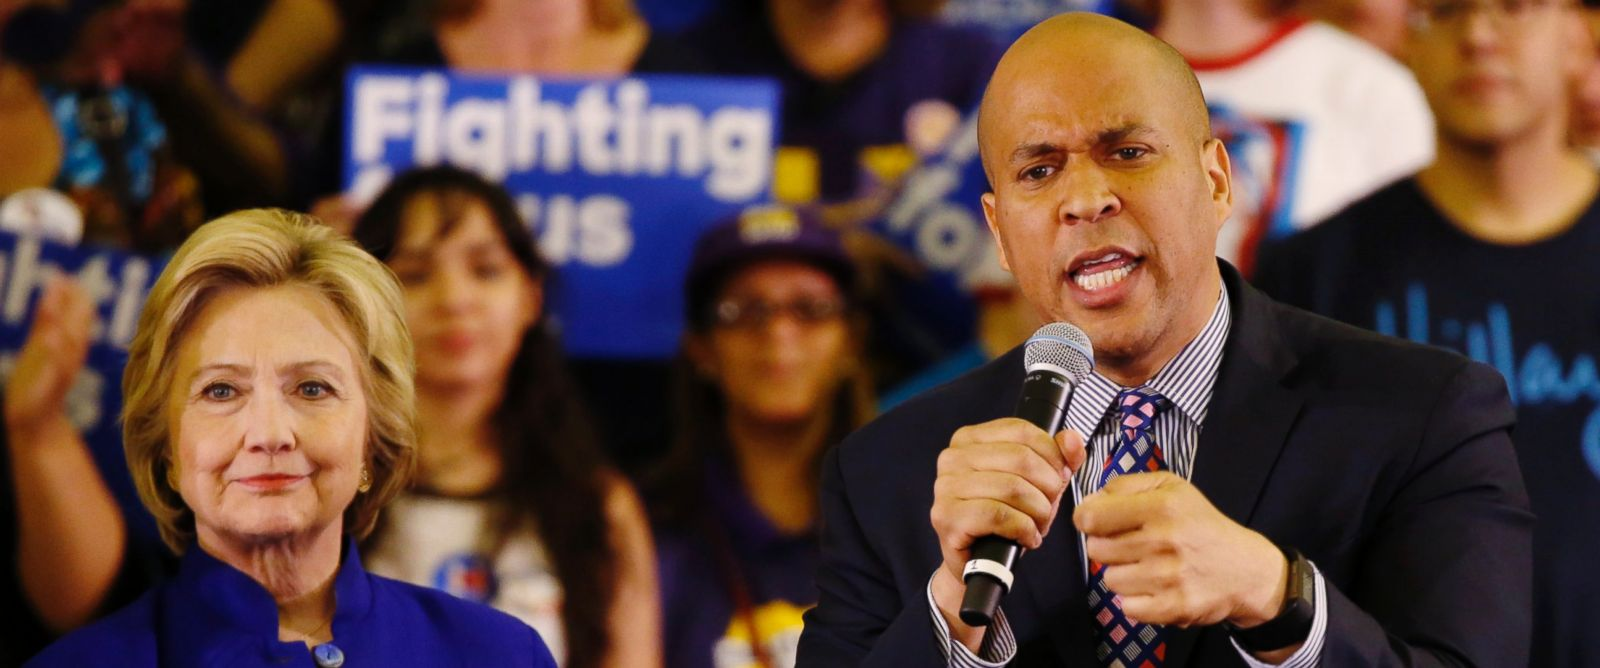 PHOTO: Senator Cory Booker introduces Democratic presidential candidate Hillary Clinton at a campaign rally, June 1, 2016, in Newark, New Jersey.